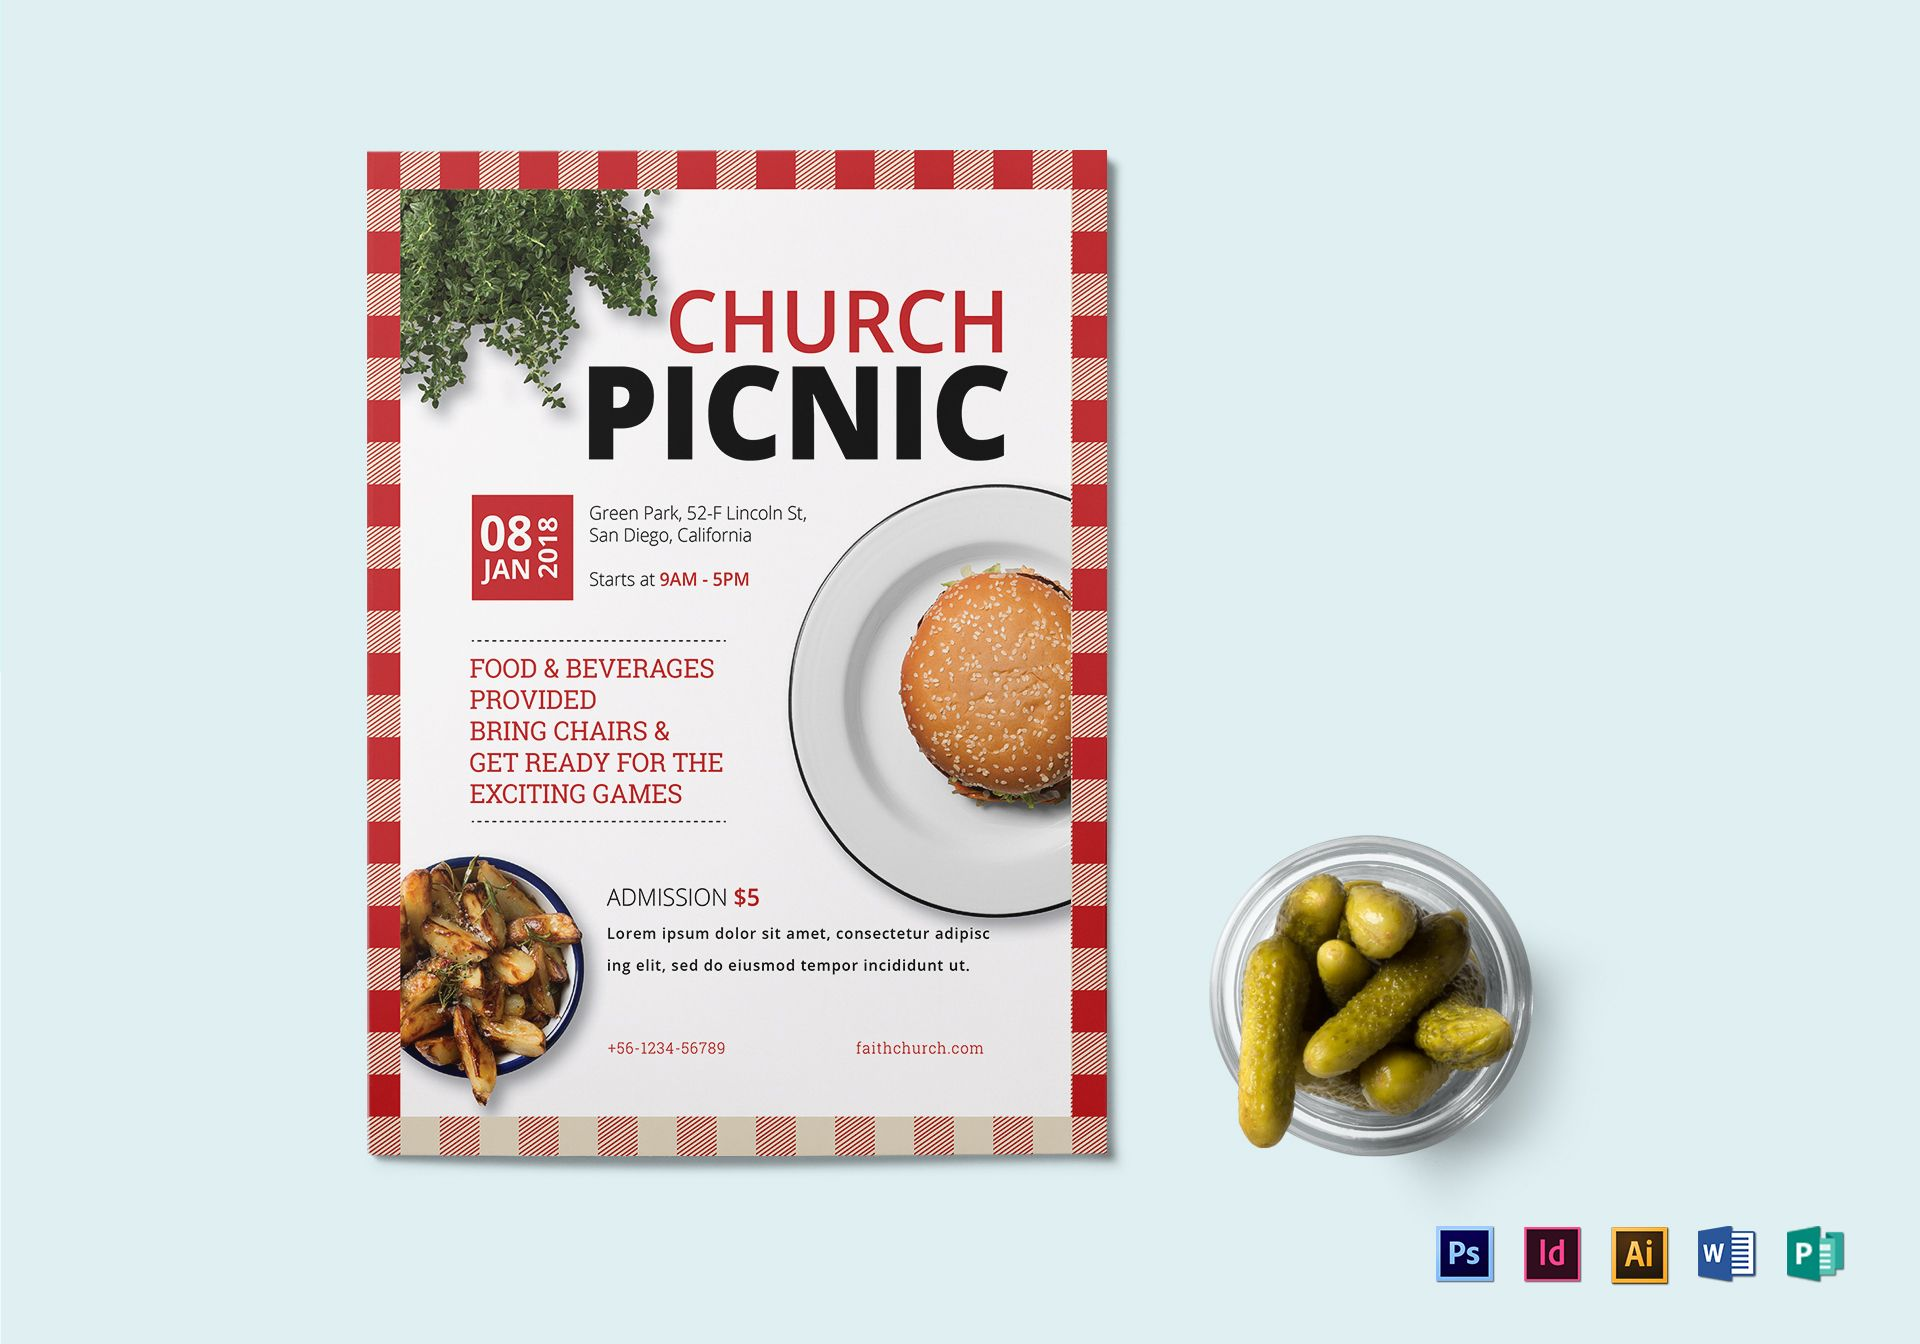 church picnic flyer design template in psd  word  publisher  illustrator  indesign